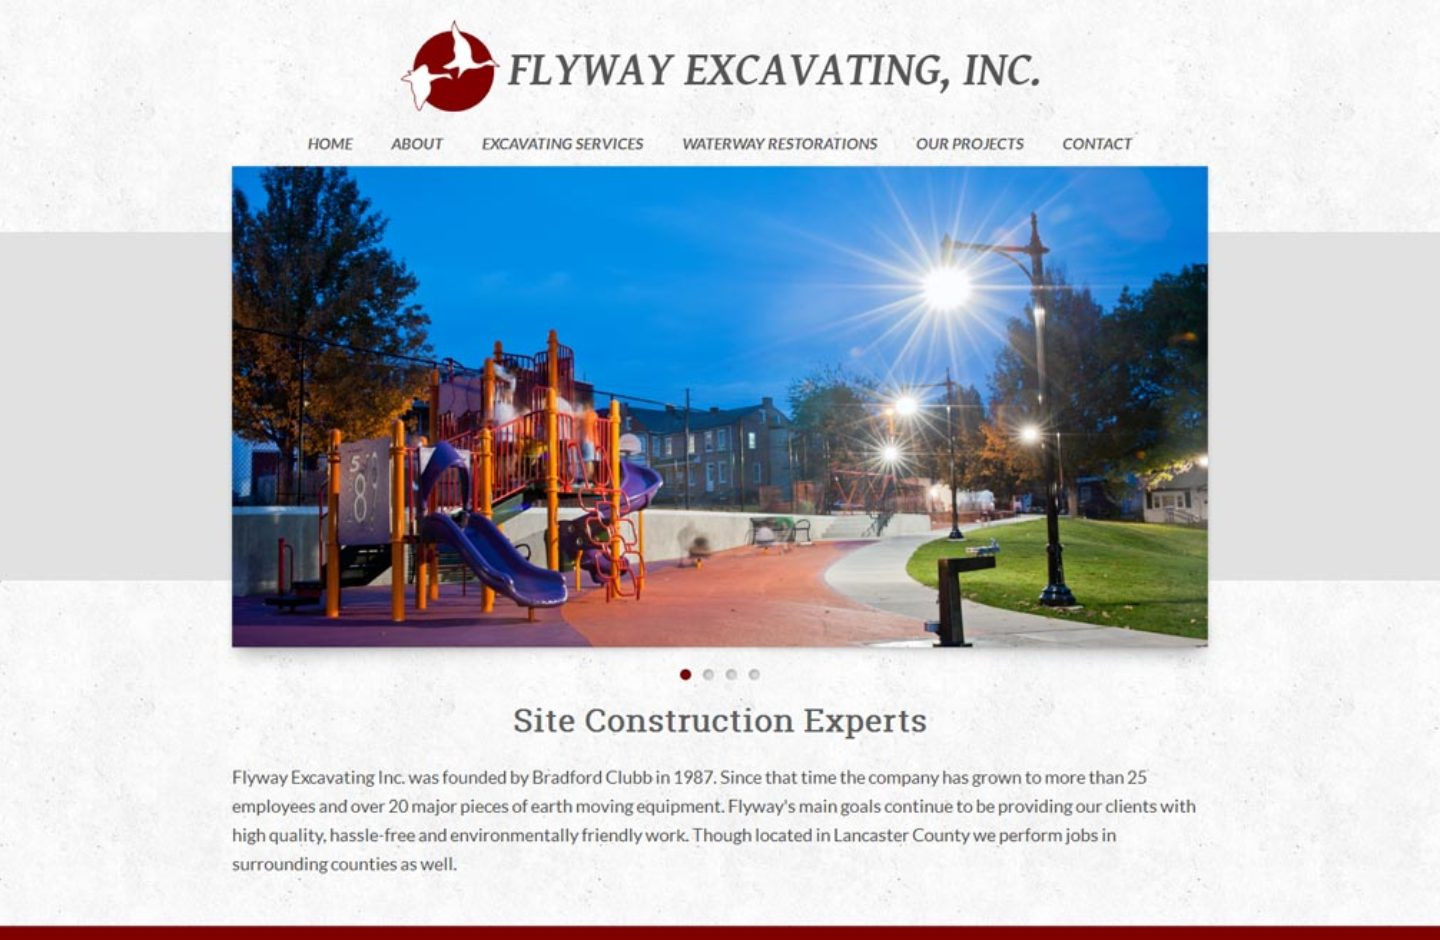 Flyway Excavating